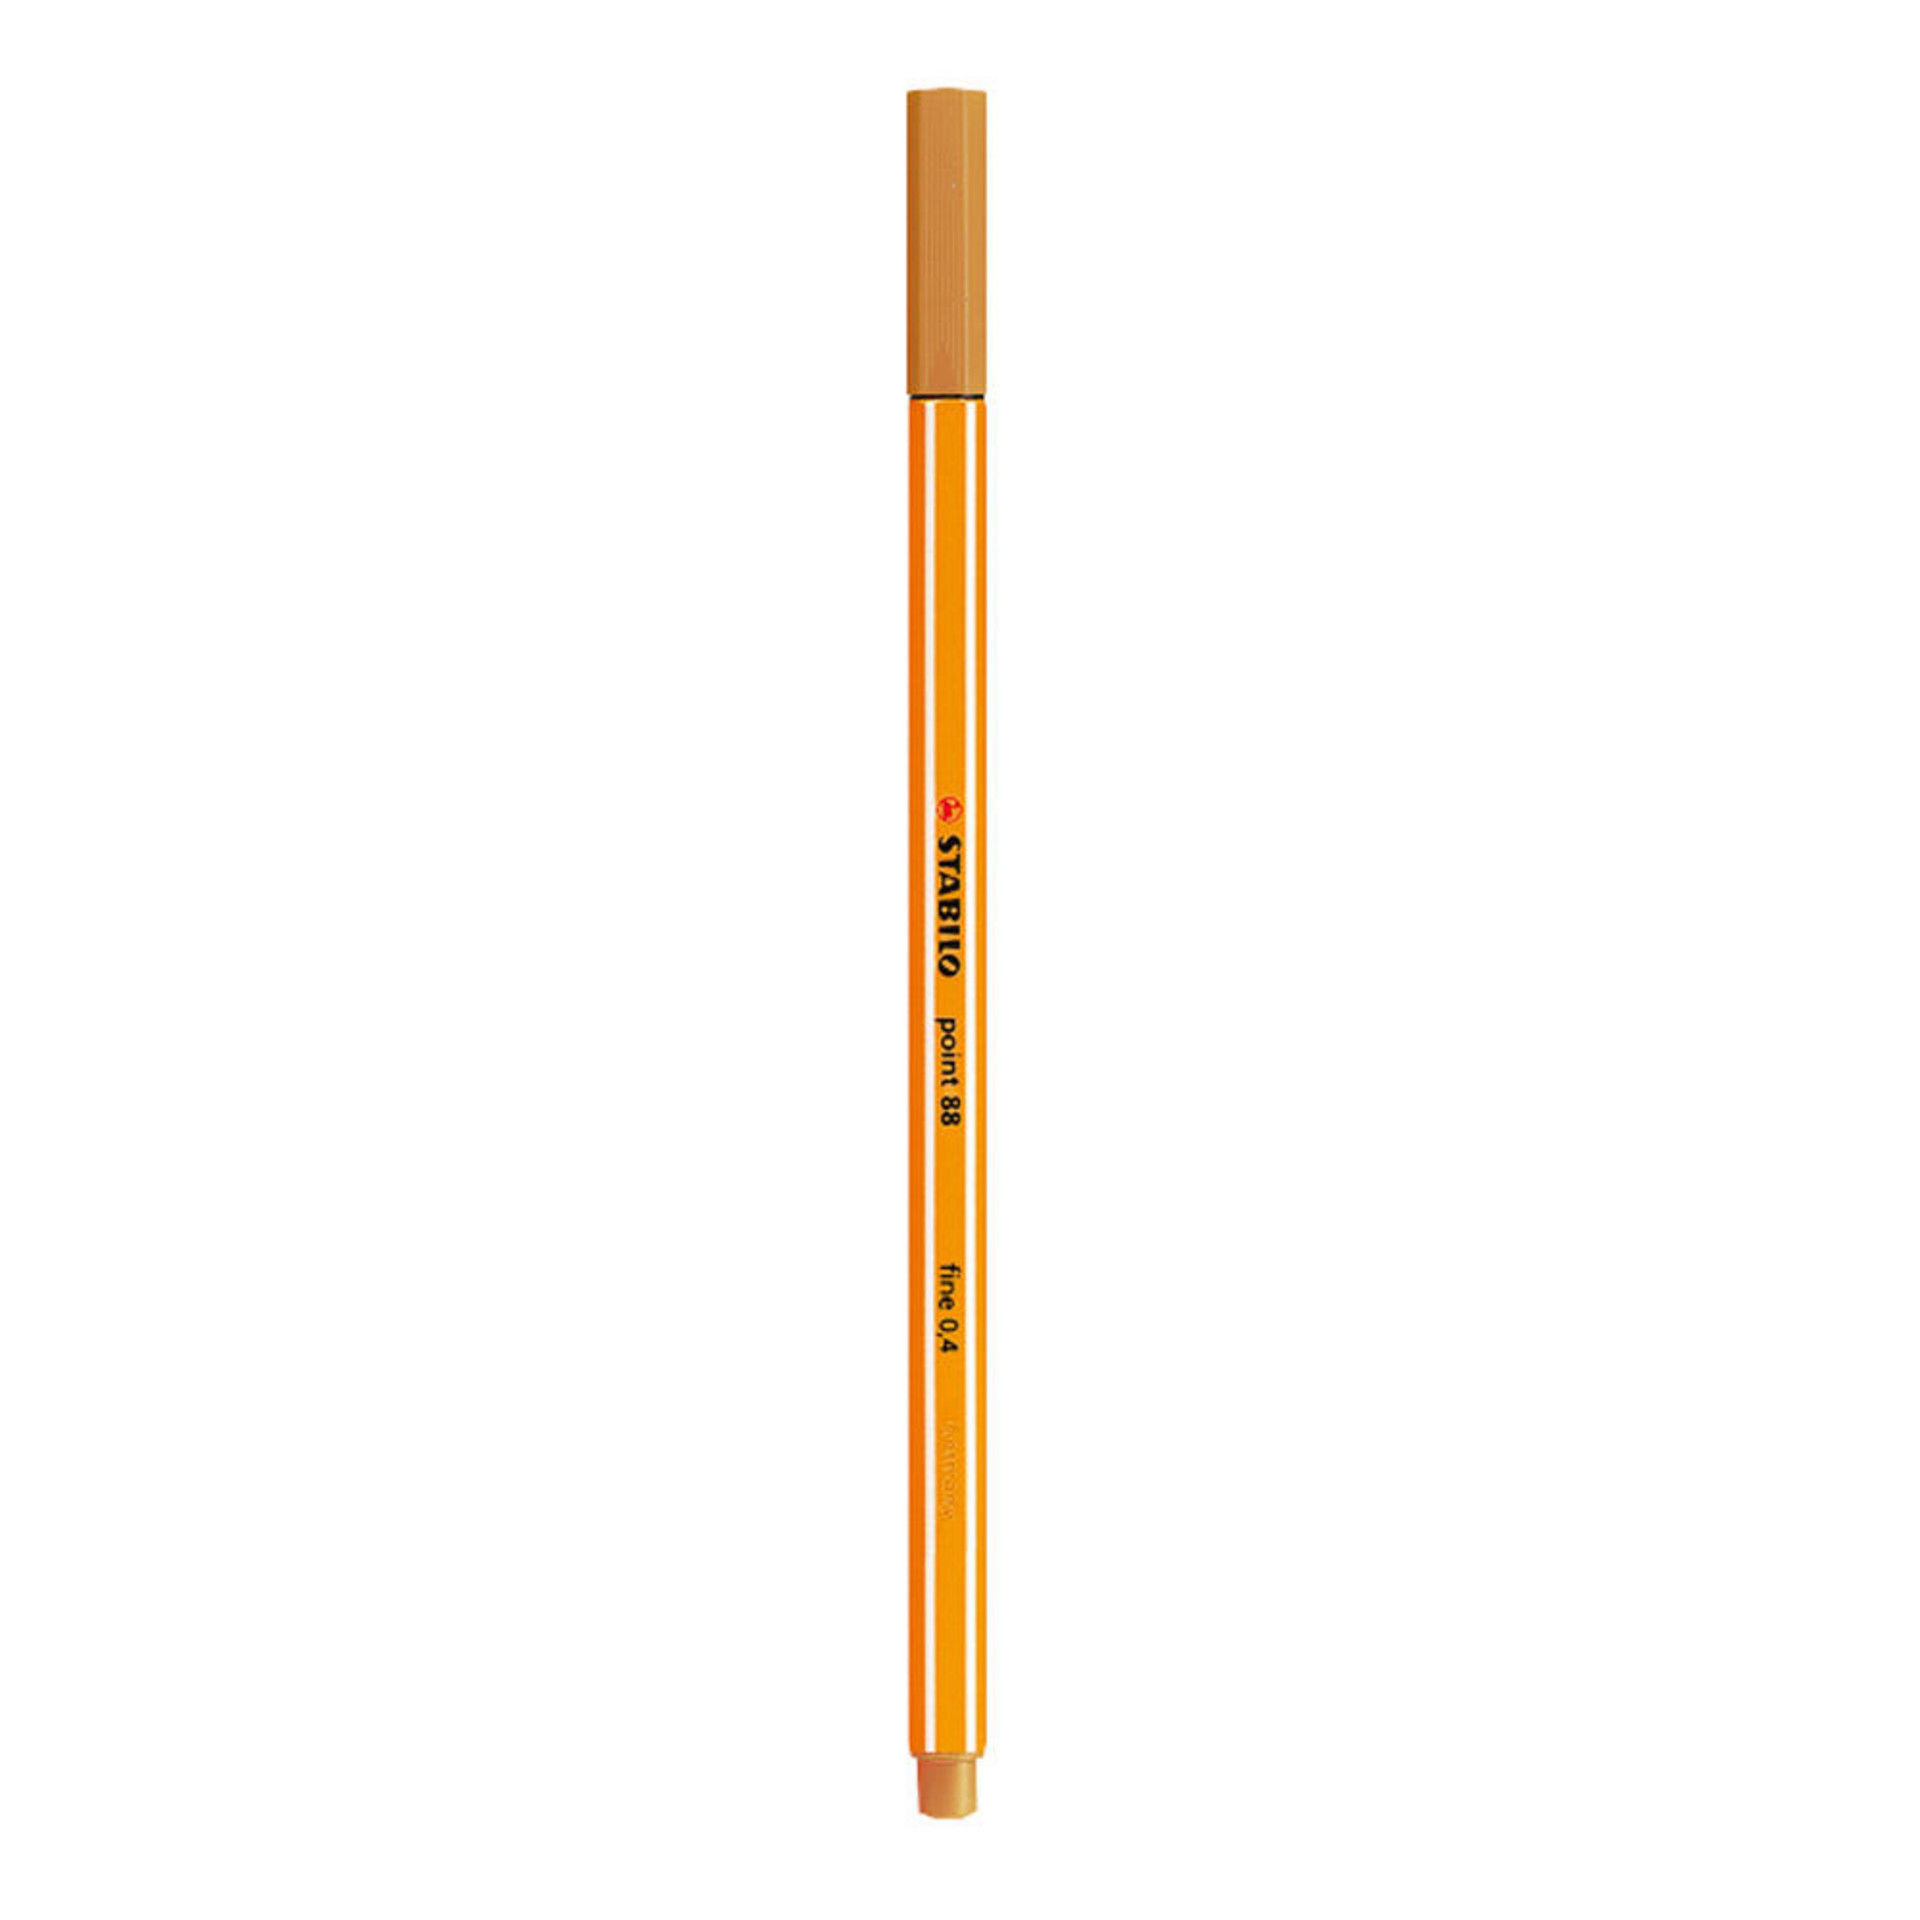 Stabilo Point 88 .4mm Fineliner Pen – Dark Ochre